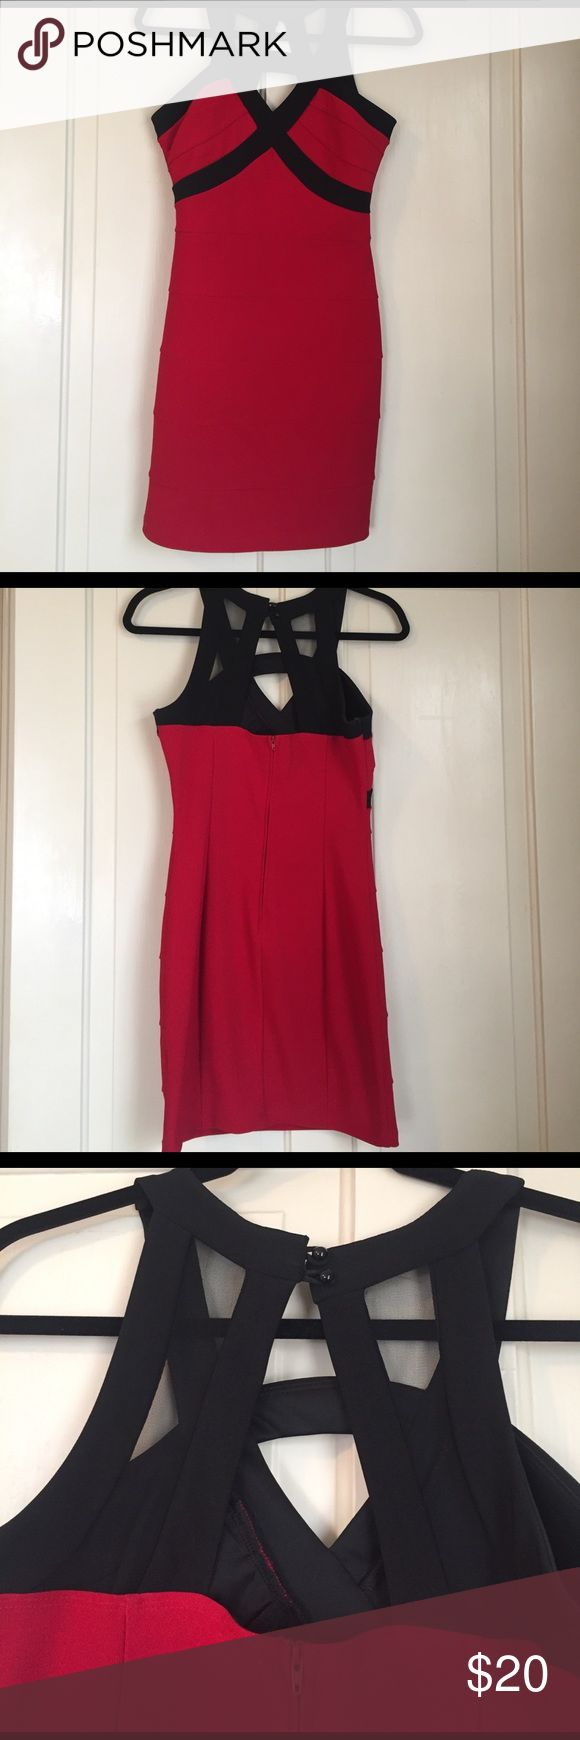 💥Red Party Dress💥 Like new, worn once. Red going out dress with black straps and black mesh back. Hits mid to high thigh.  1 marked item for list price ($5 and up) 2 marked items for $11 3 marked items for $16 4 marked items for $20   Plus only pay one shipping fee!   Just create a bundle and offer the appropriate price or I can privately offer you the price on any bundles! Comment with any questions. Ruby Rox Dresses Mini